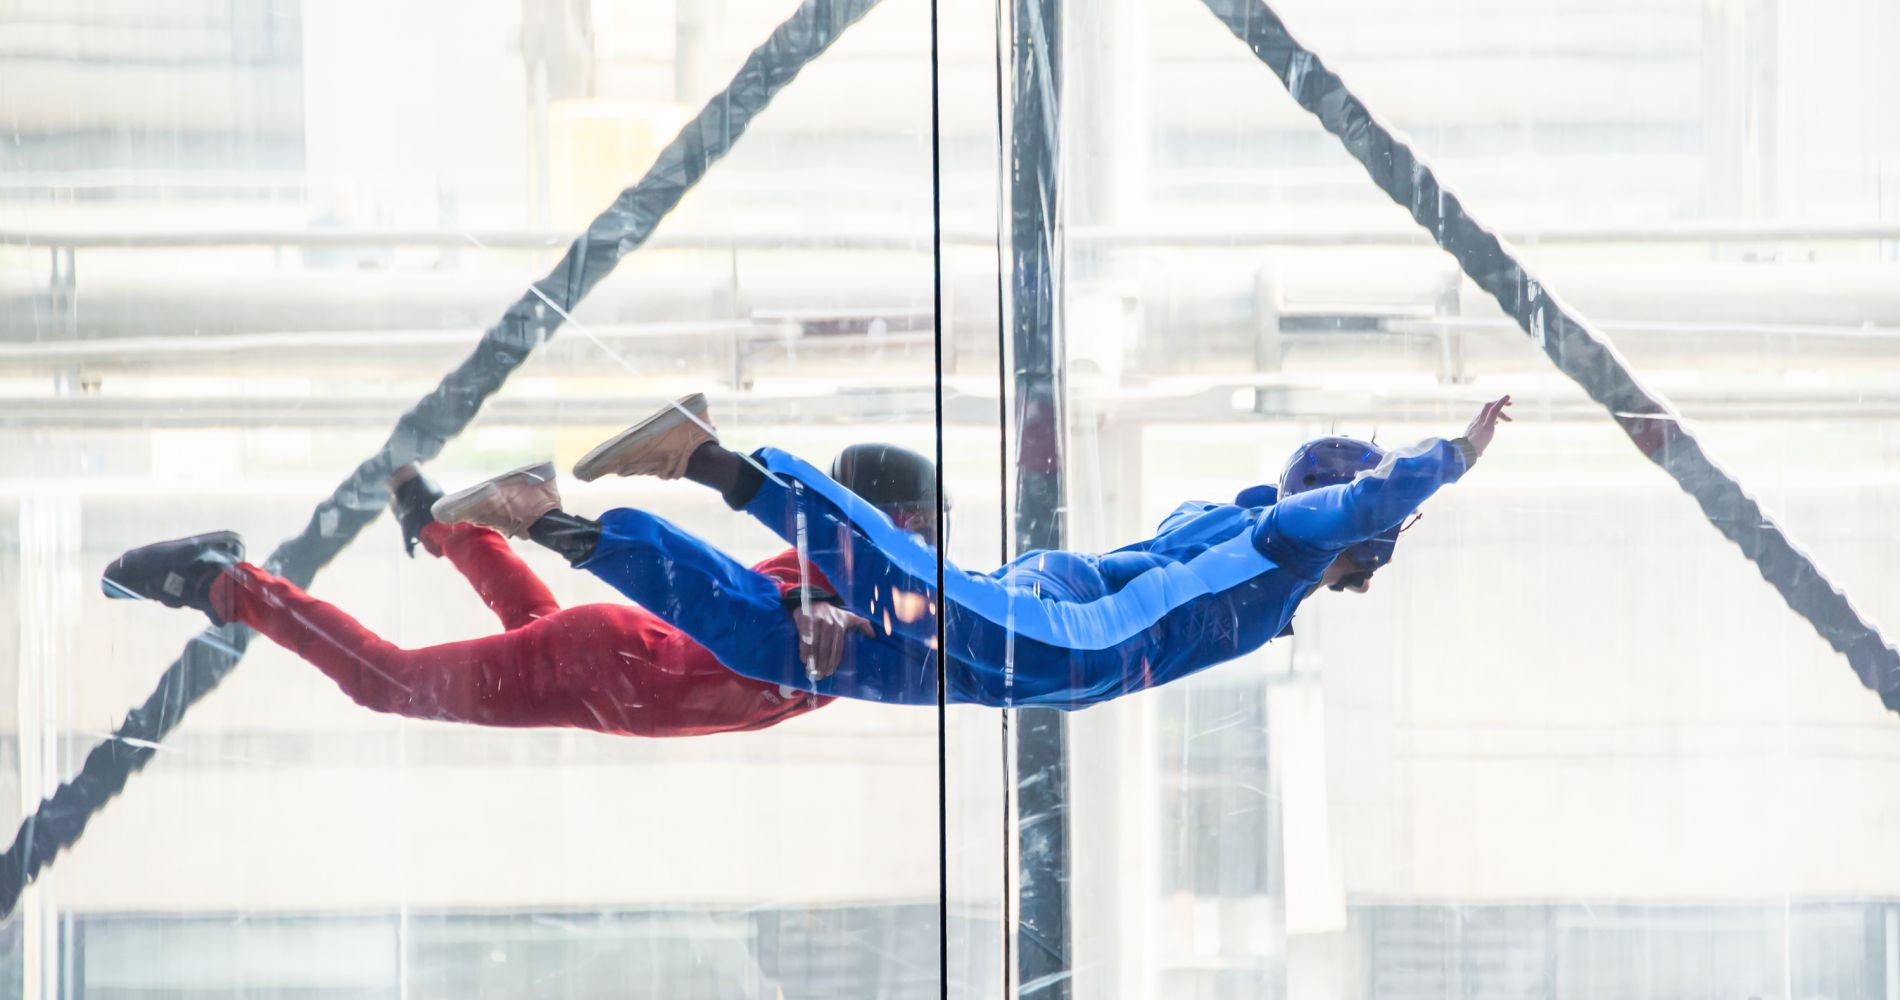 Indoor Skydiving in USA